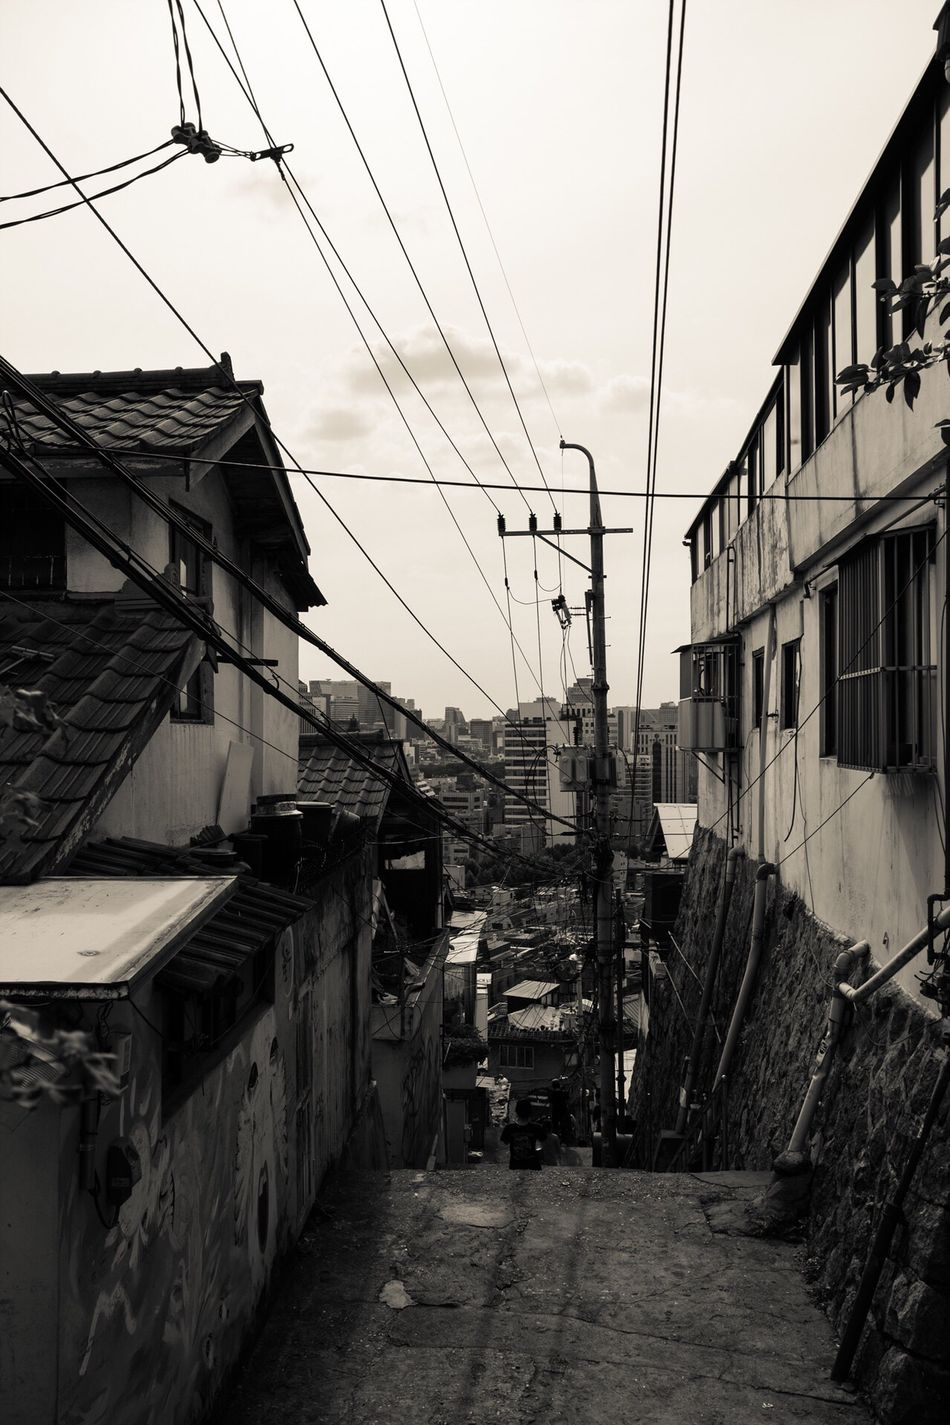 Architecture Building Exterior Built Structure Residential Building Residential Structure House Cable City Power Line  Sky Electricity Pylon Day The Way Forward Power Cable Power Supply Residential District Slum Narrow Outdoors Town Ewha Wall Picture Village South Korea